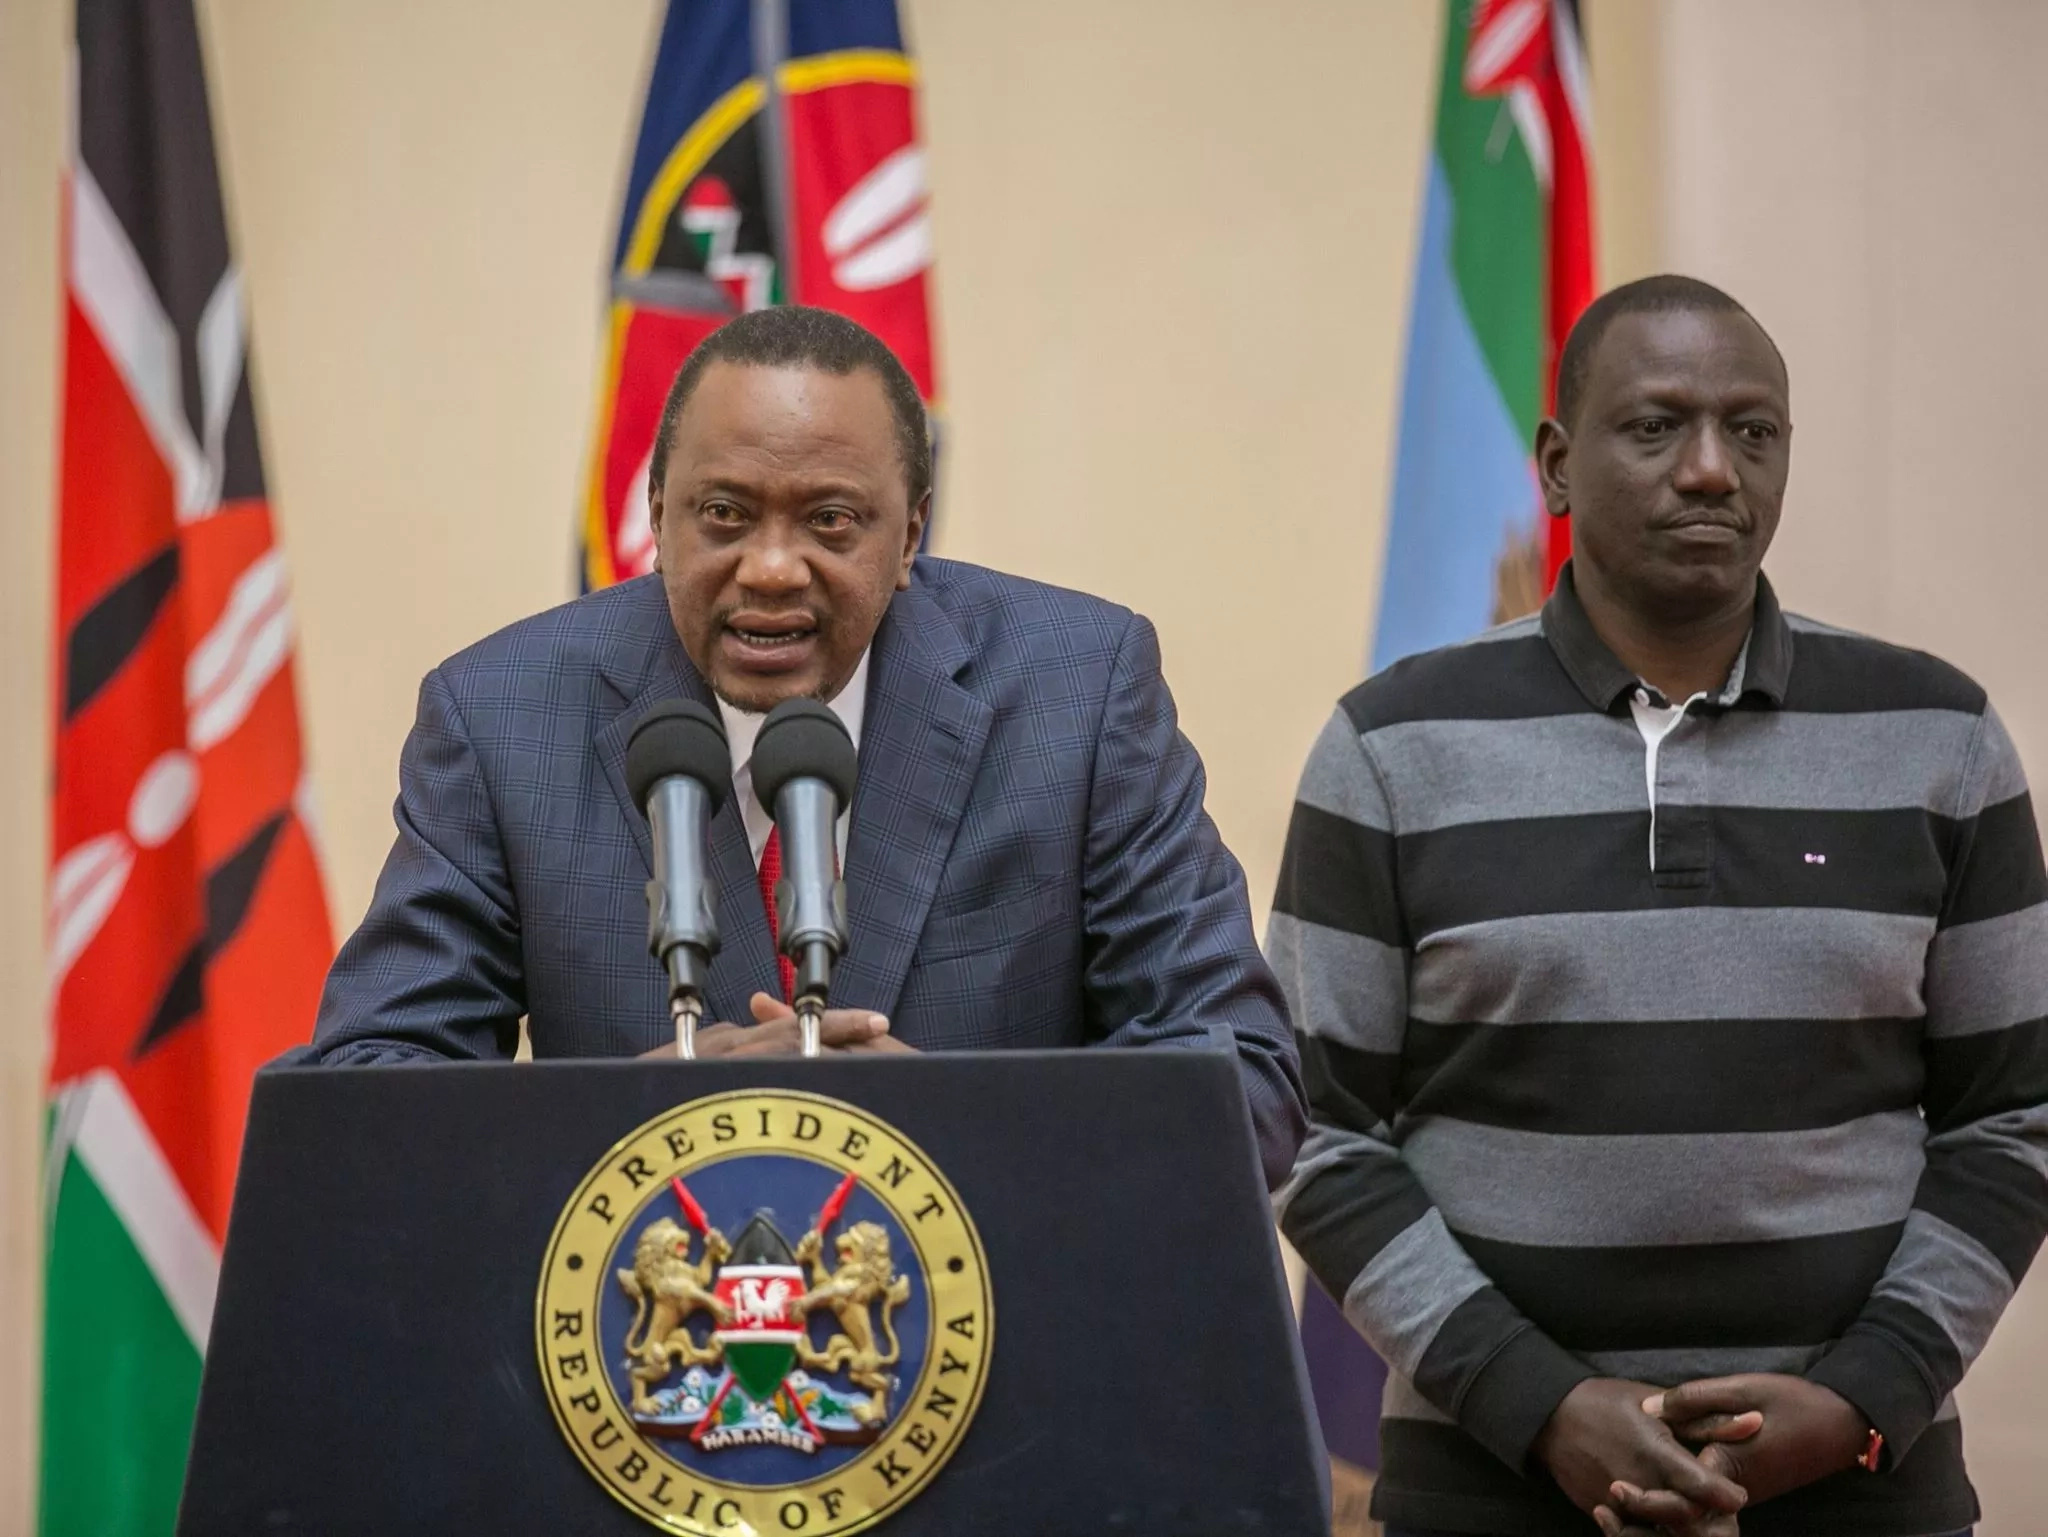 Court annuls Kenya presidential election